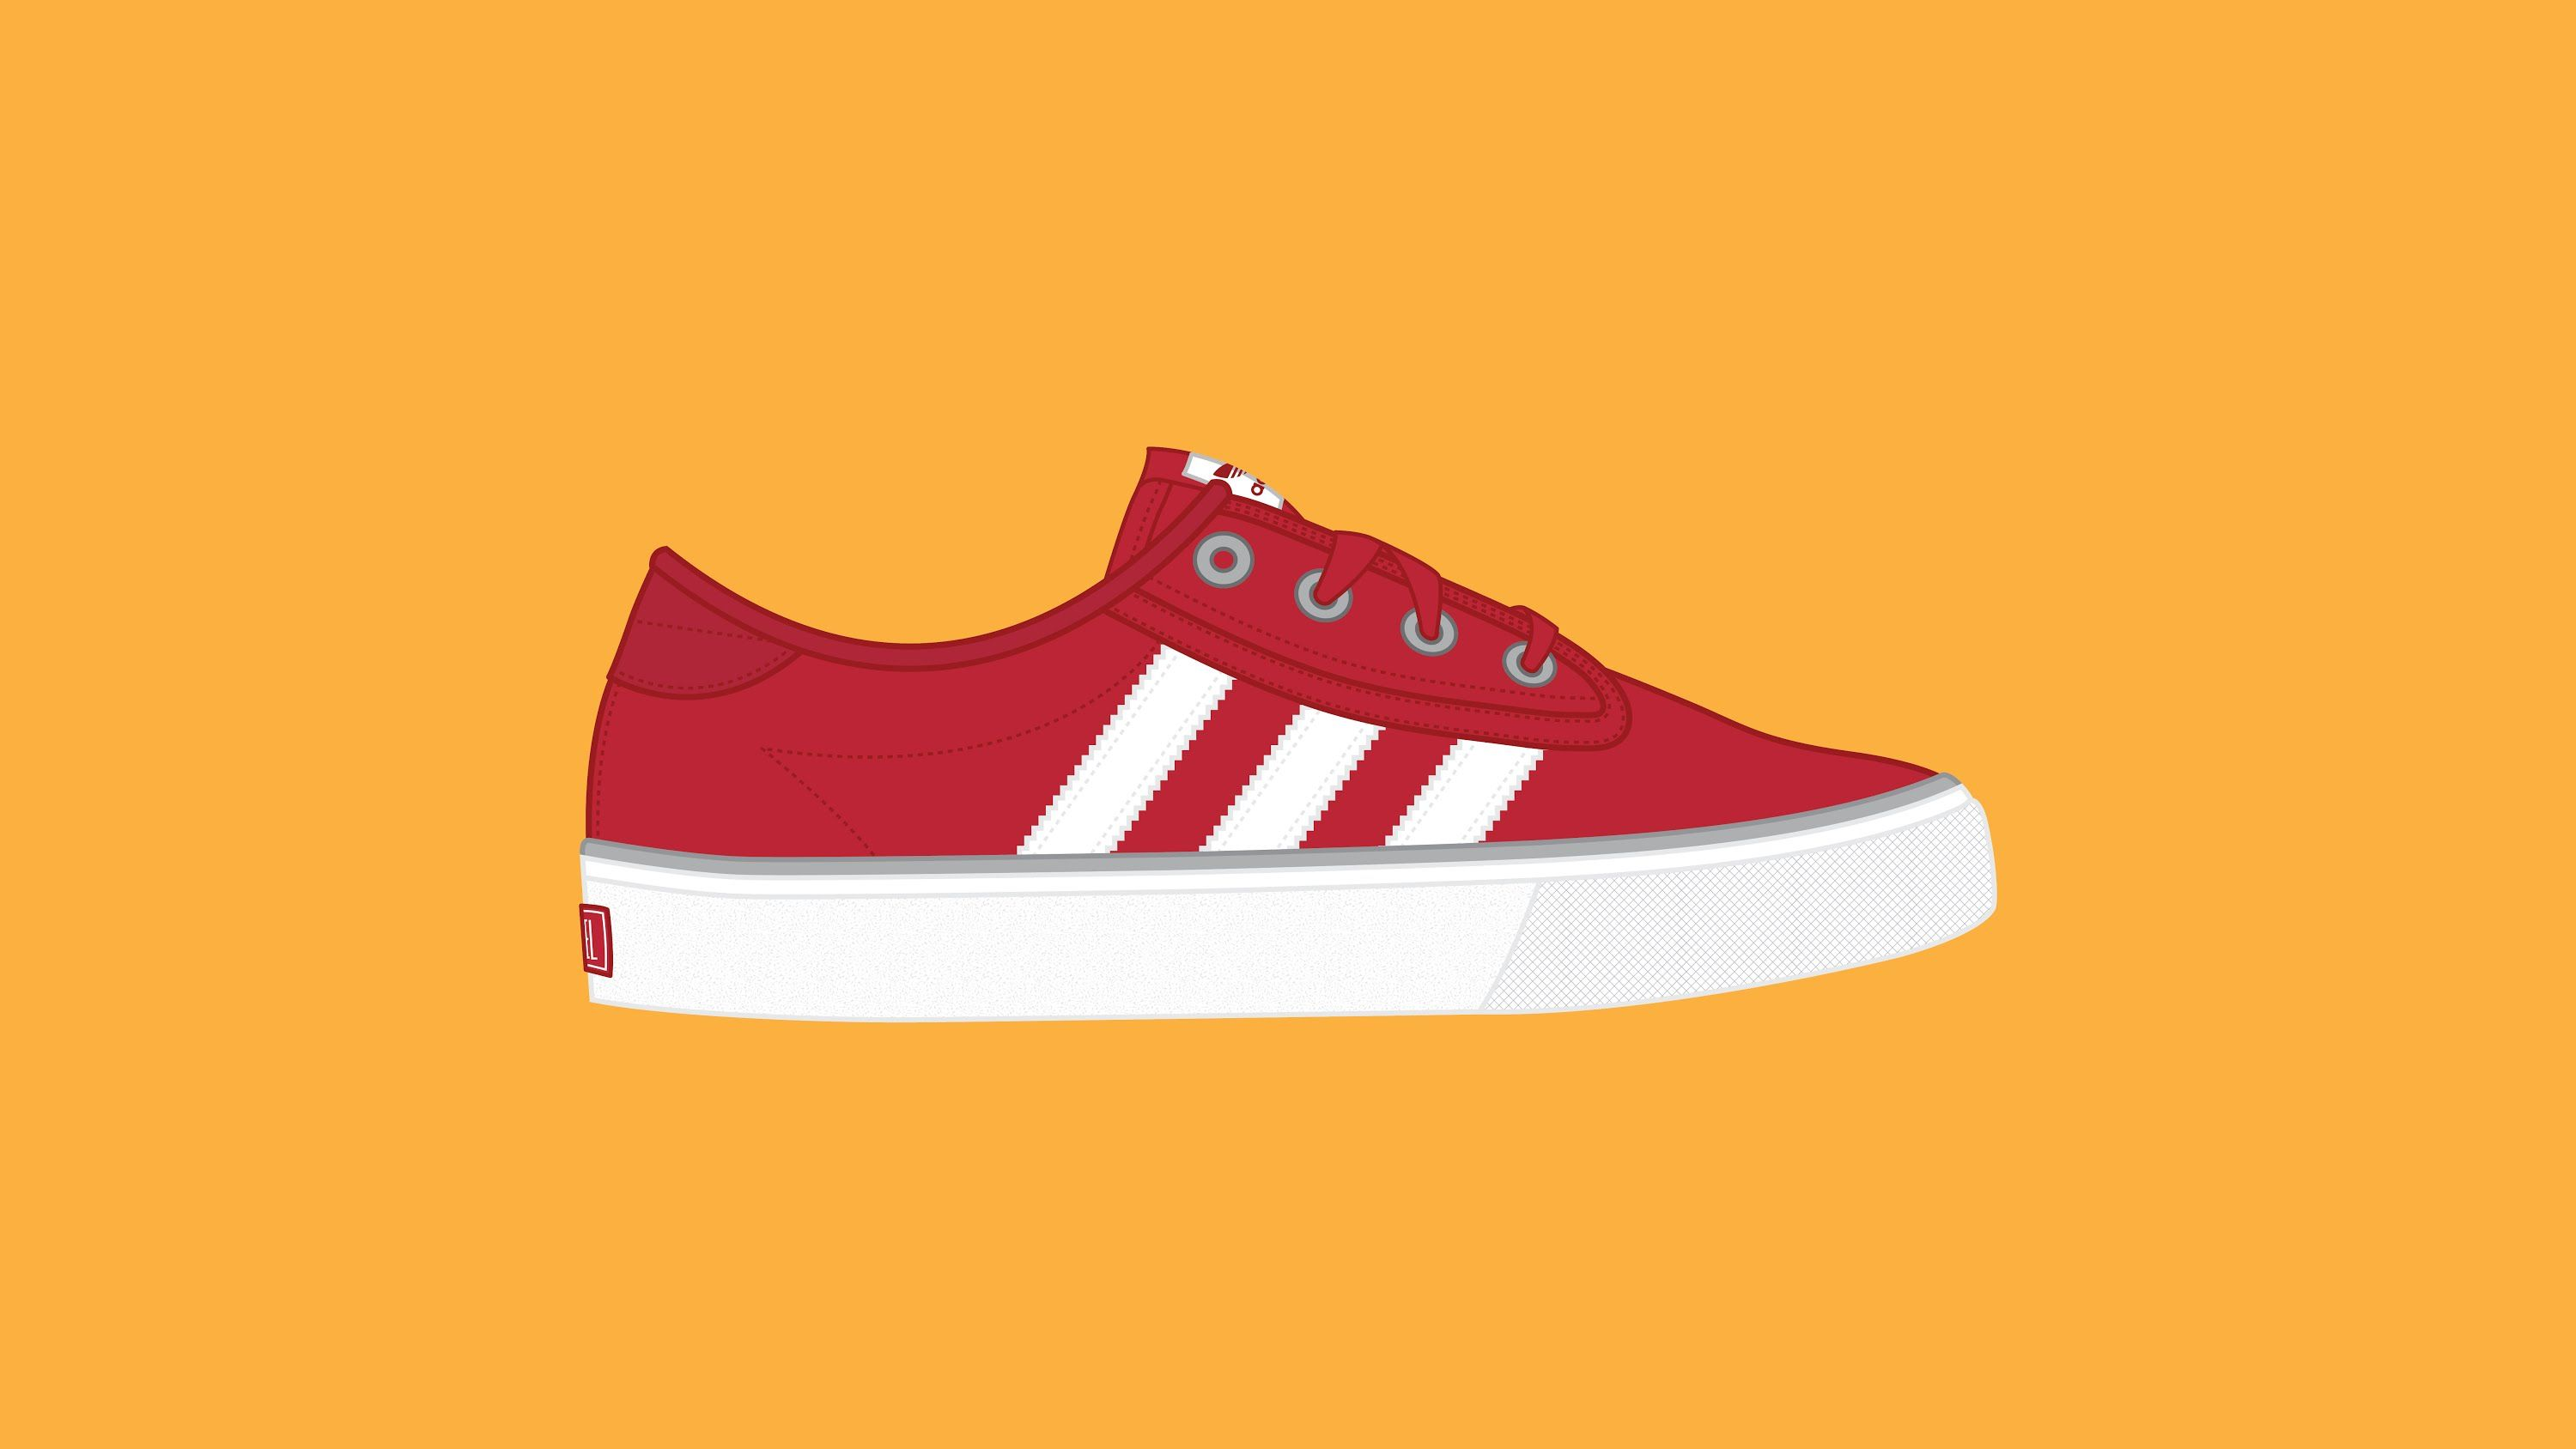 adidas originals illustration - Google Search | Final MOME 206 | Pinterest  | Adidas and Finals